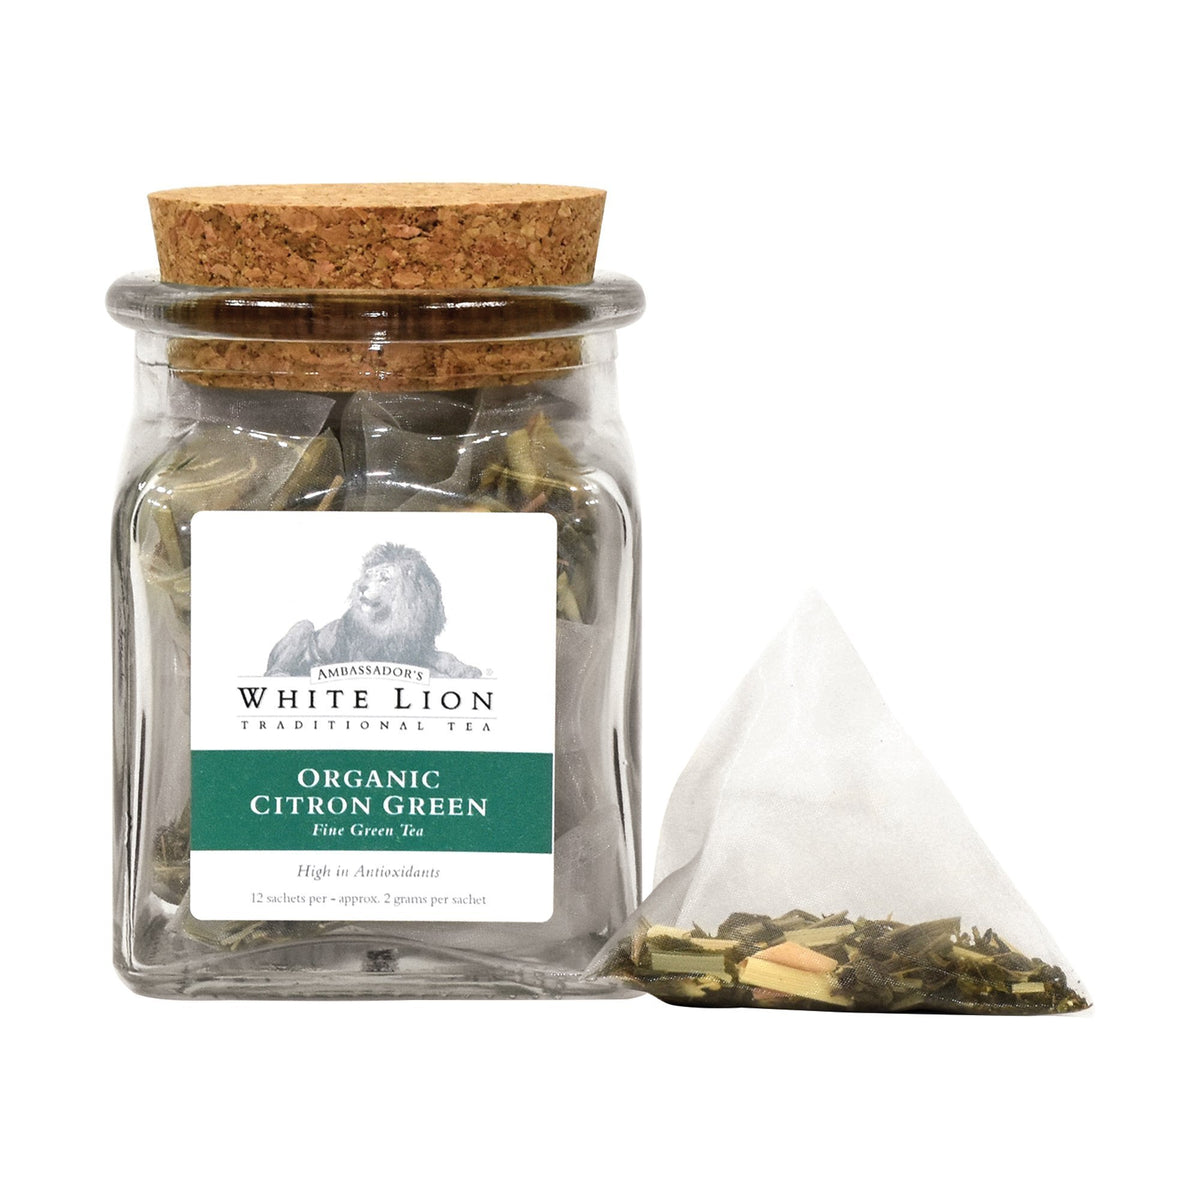 Ambassador's White Lion Organic Citron Green Tea